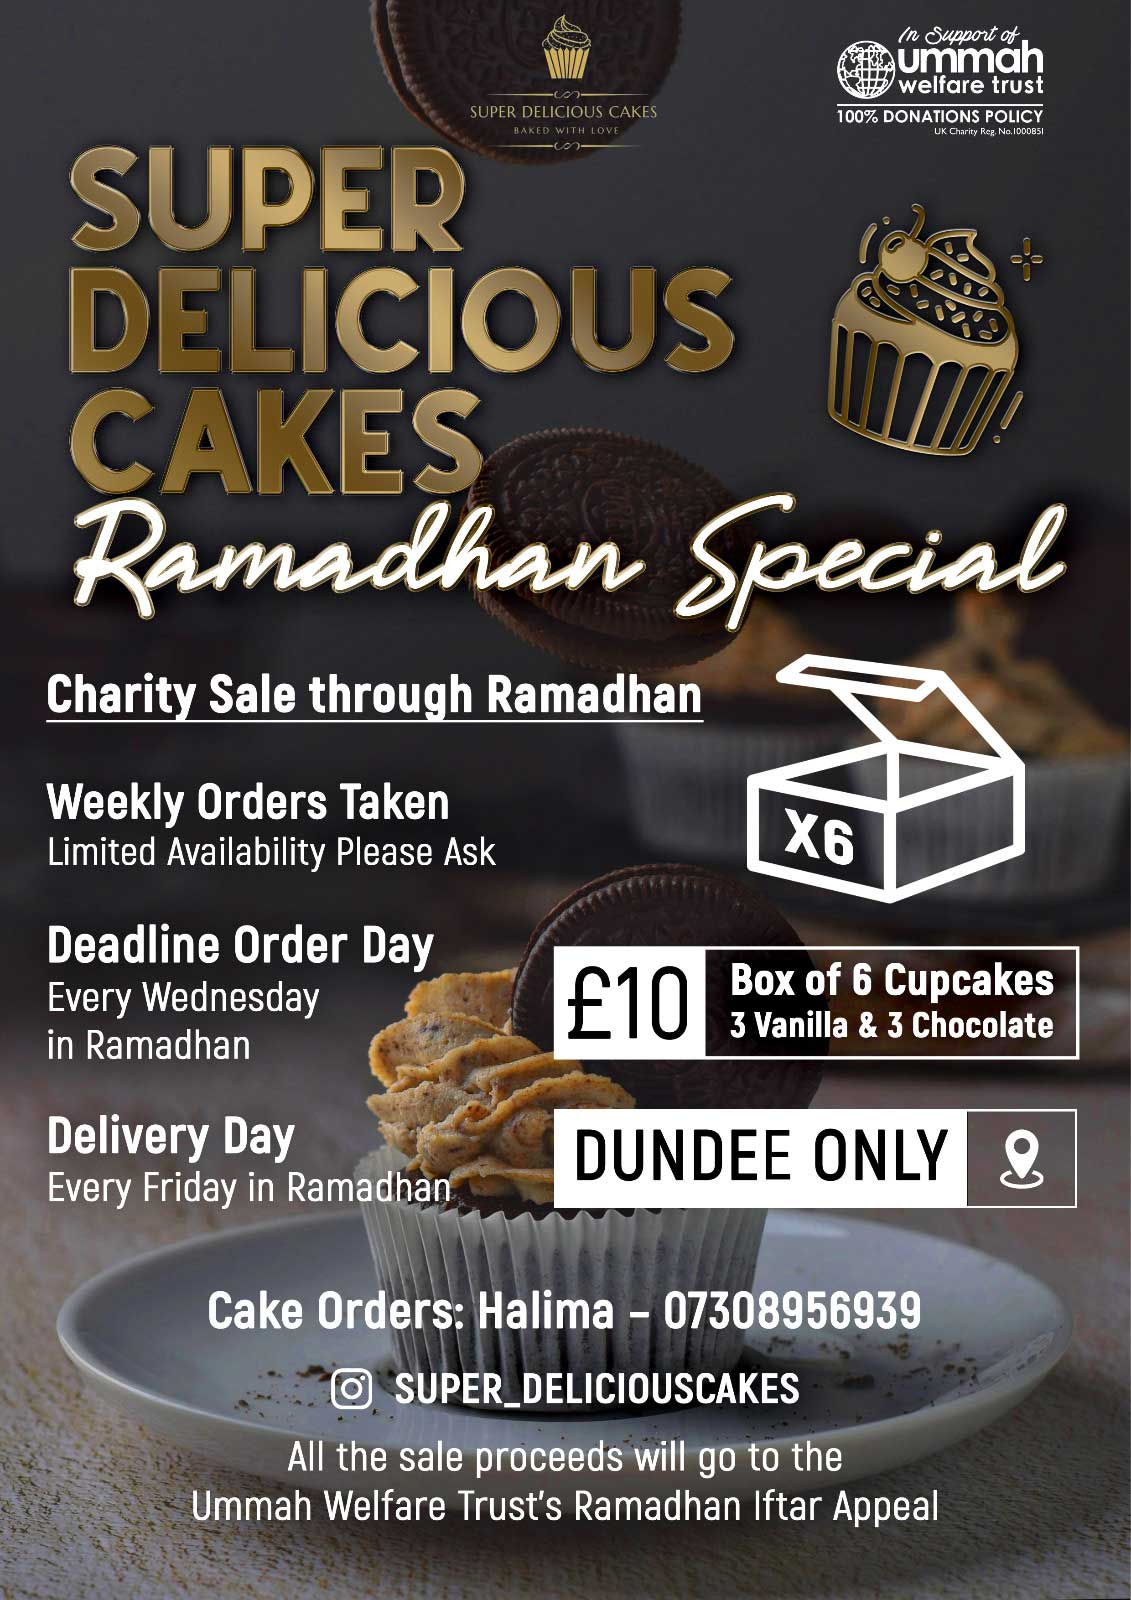 Charity Cake Sale Dundee